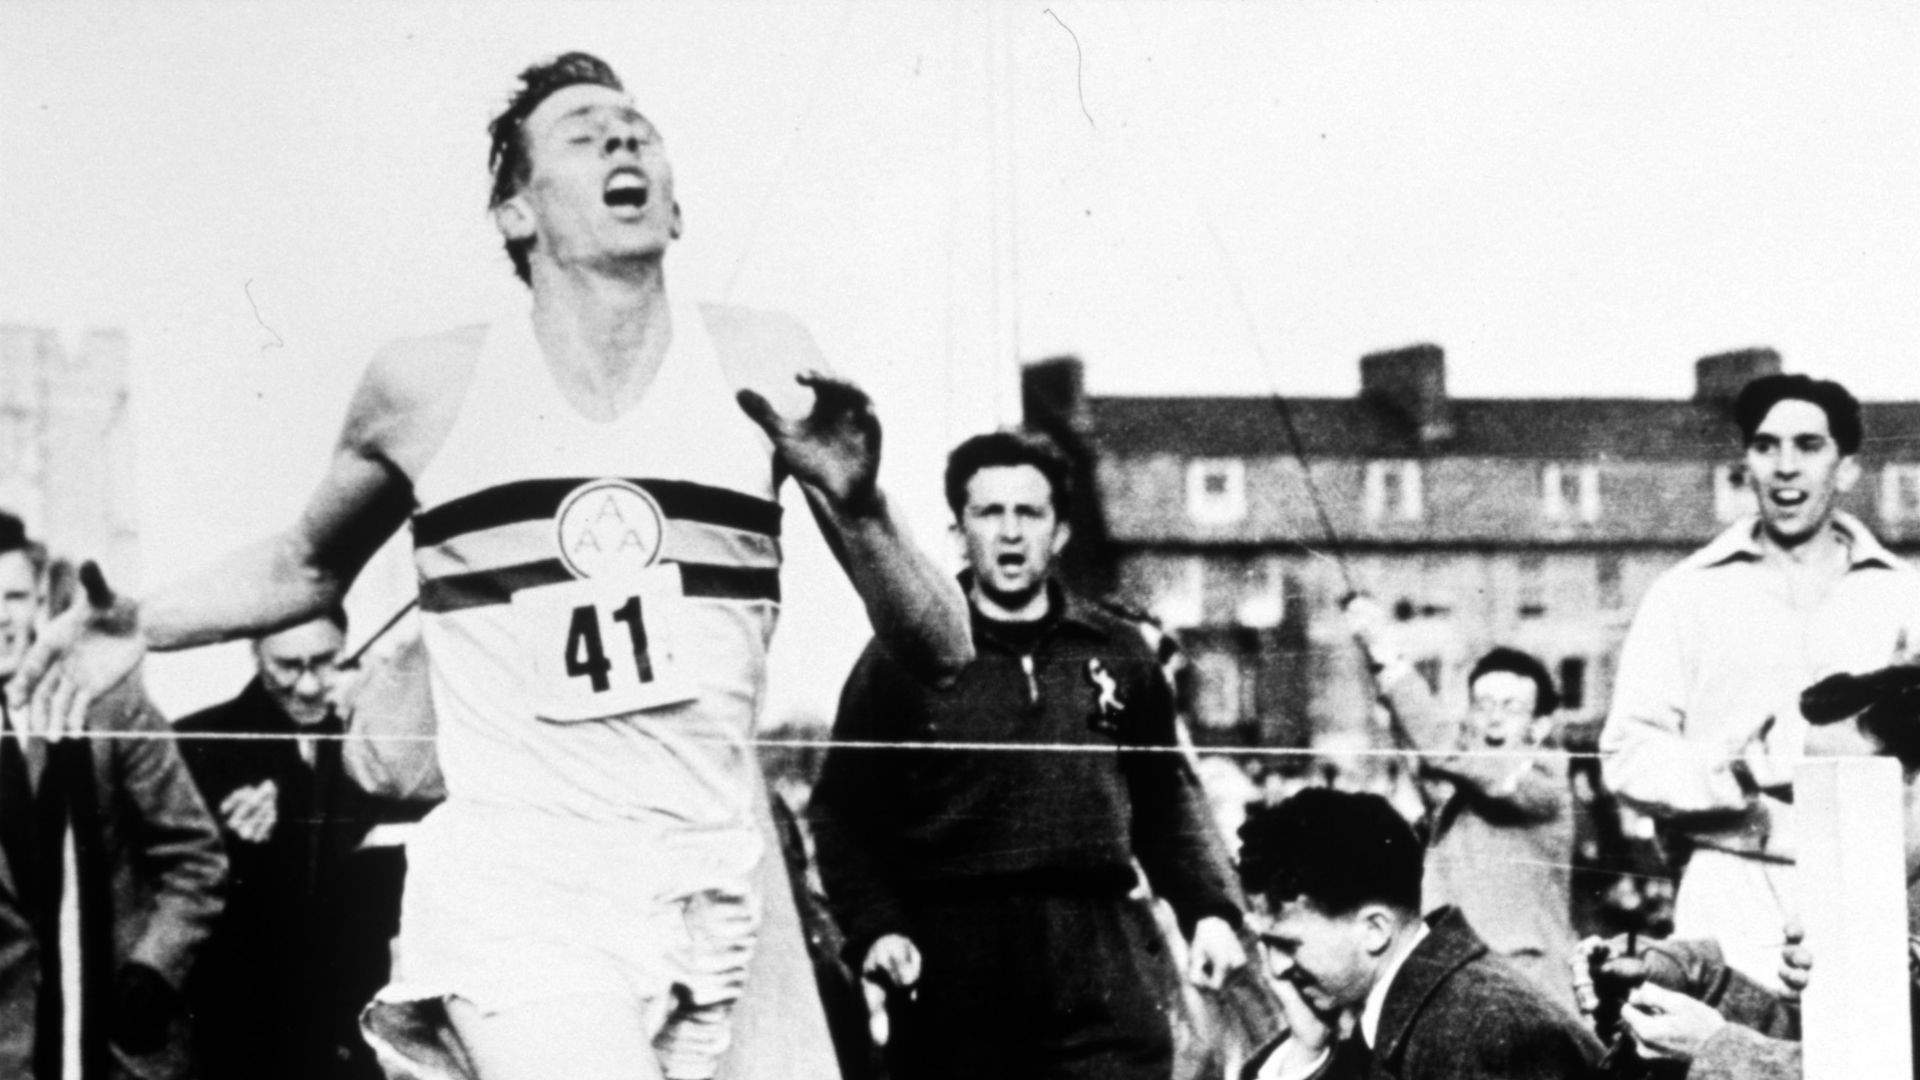 Bannister's mile, Comaneci's perfect 10, Lara's 400 - Sport's landmark feats